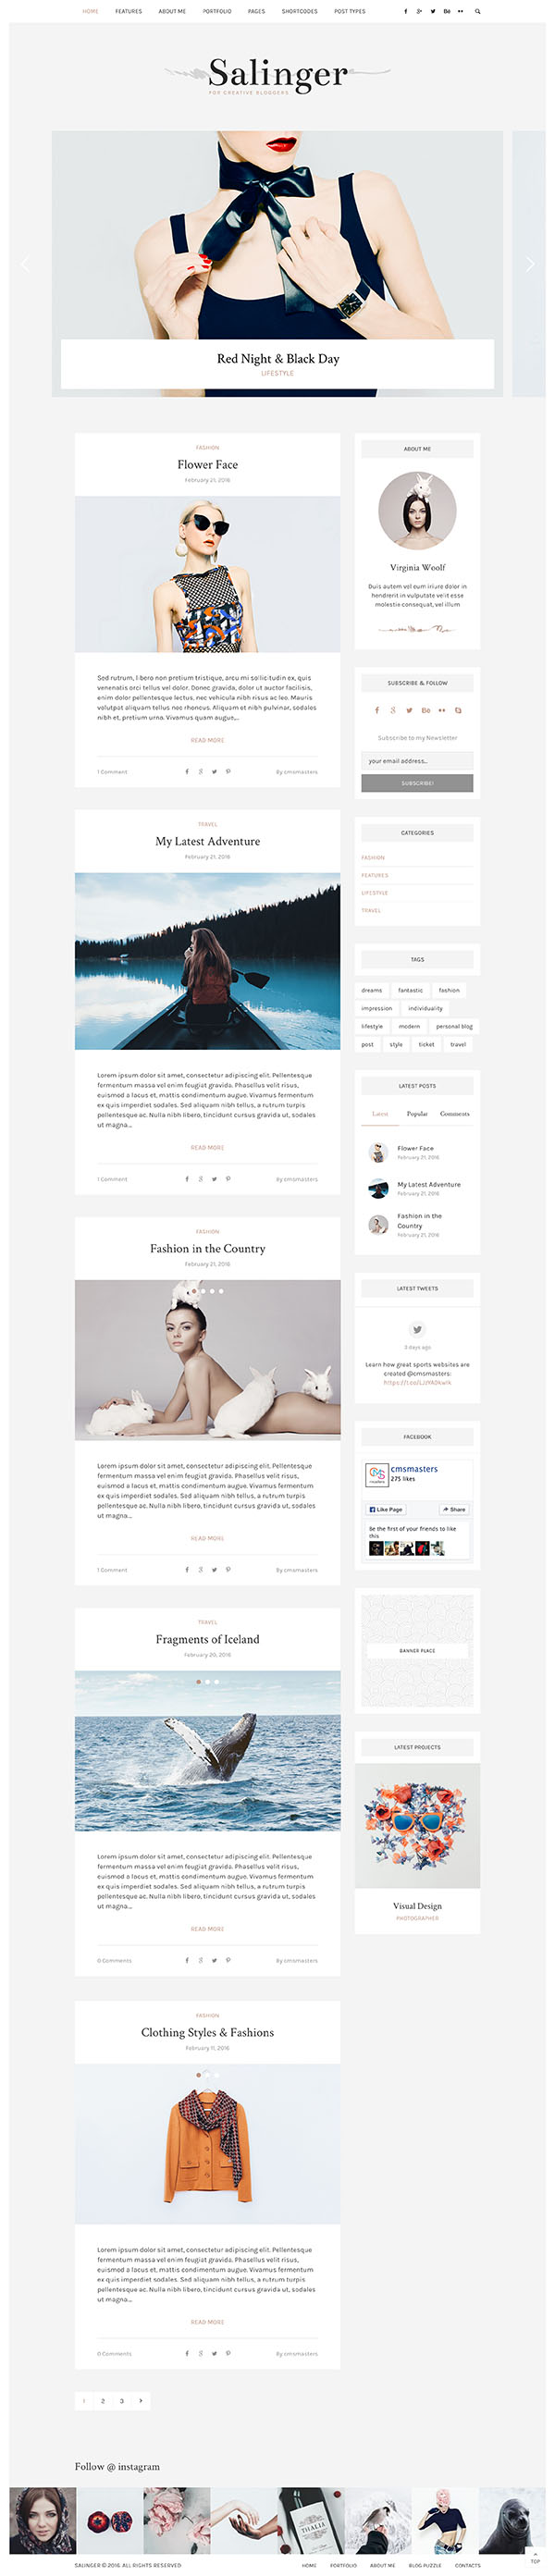 13 Salinger - Personal Blog & Portfolio WordPress Theme